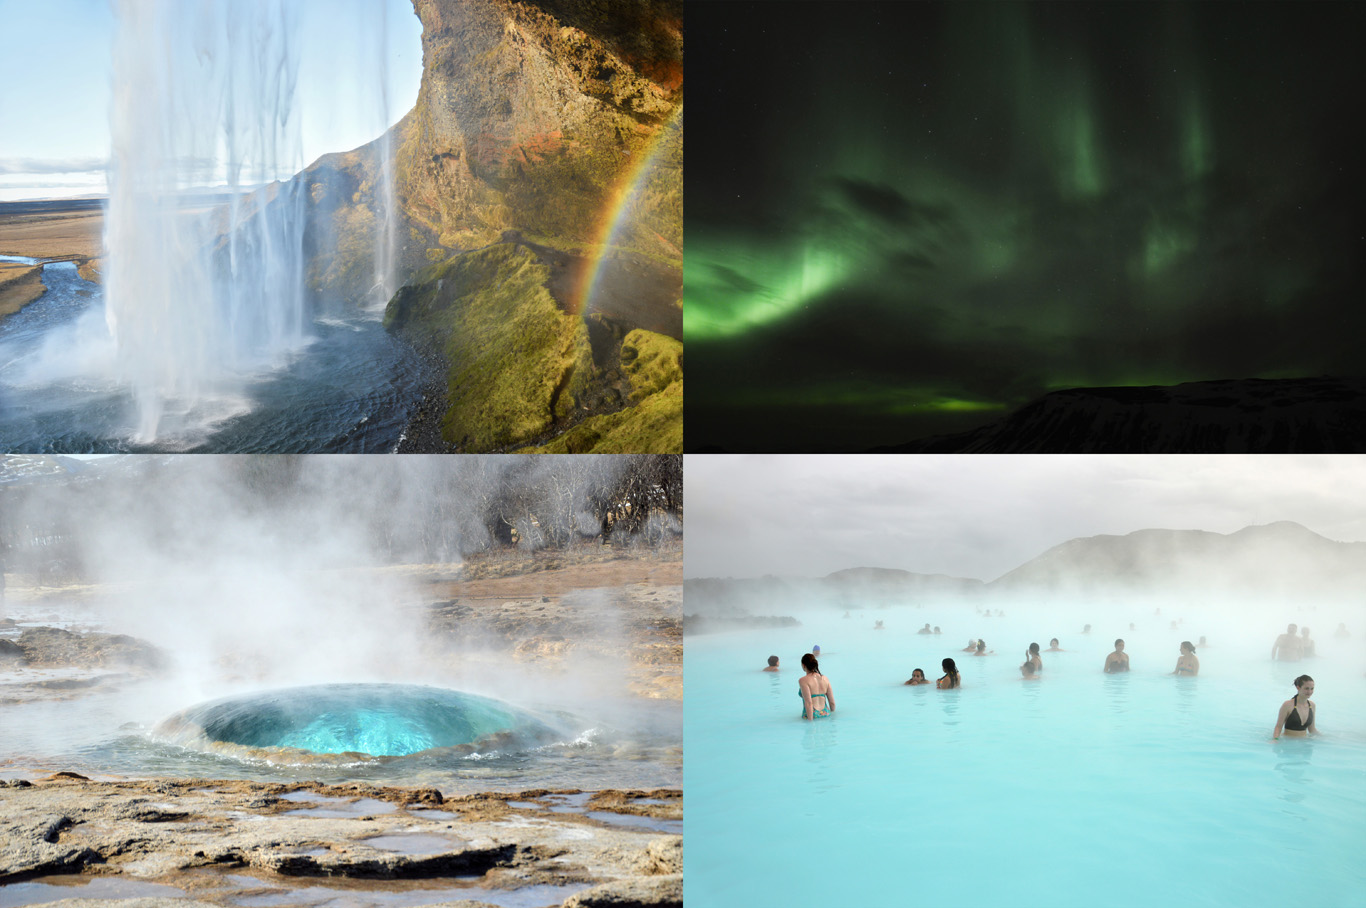 From top left: Seljalandsfoss Waterfall, Northern Lights, Geyser about to erupt and Blue Lagoon